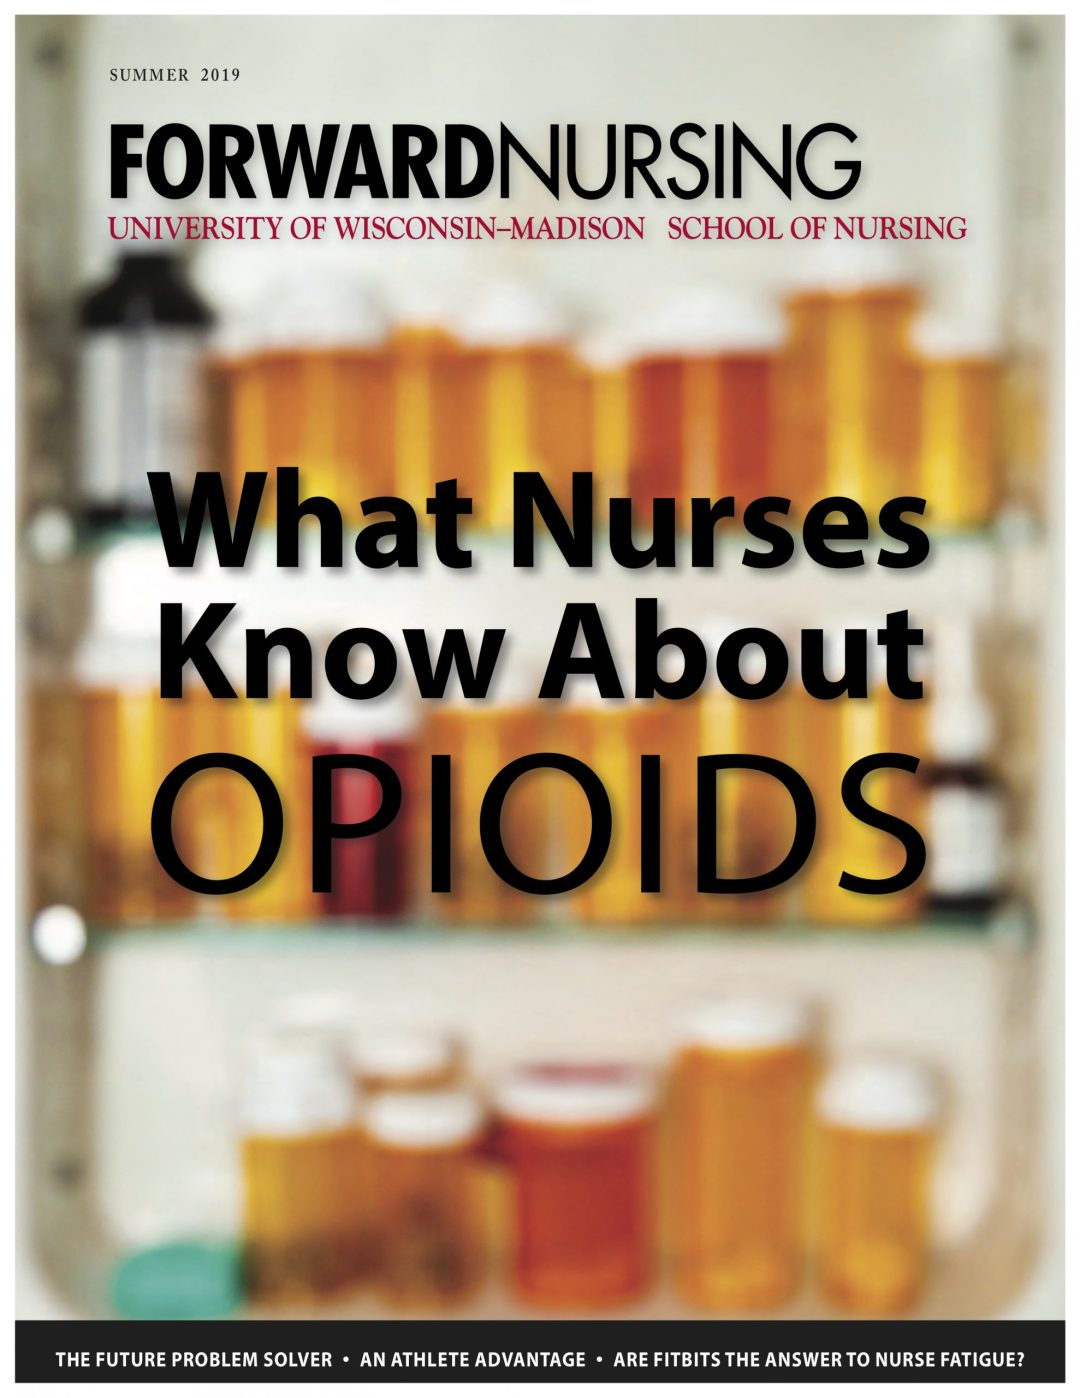 What Nurses Know About Opioids